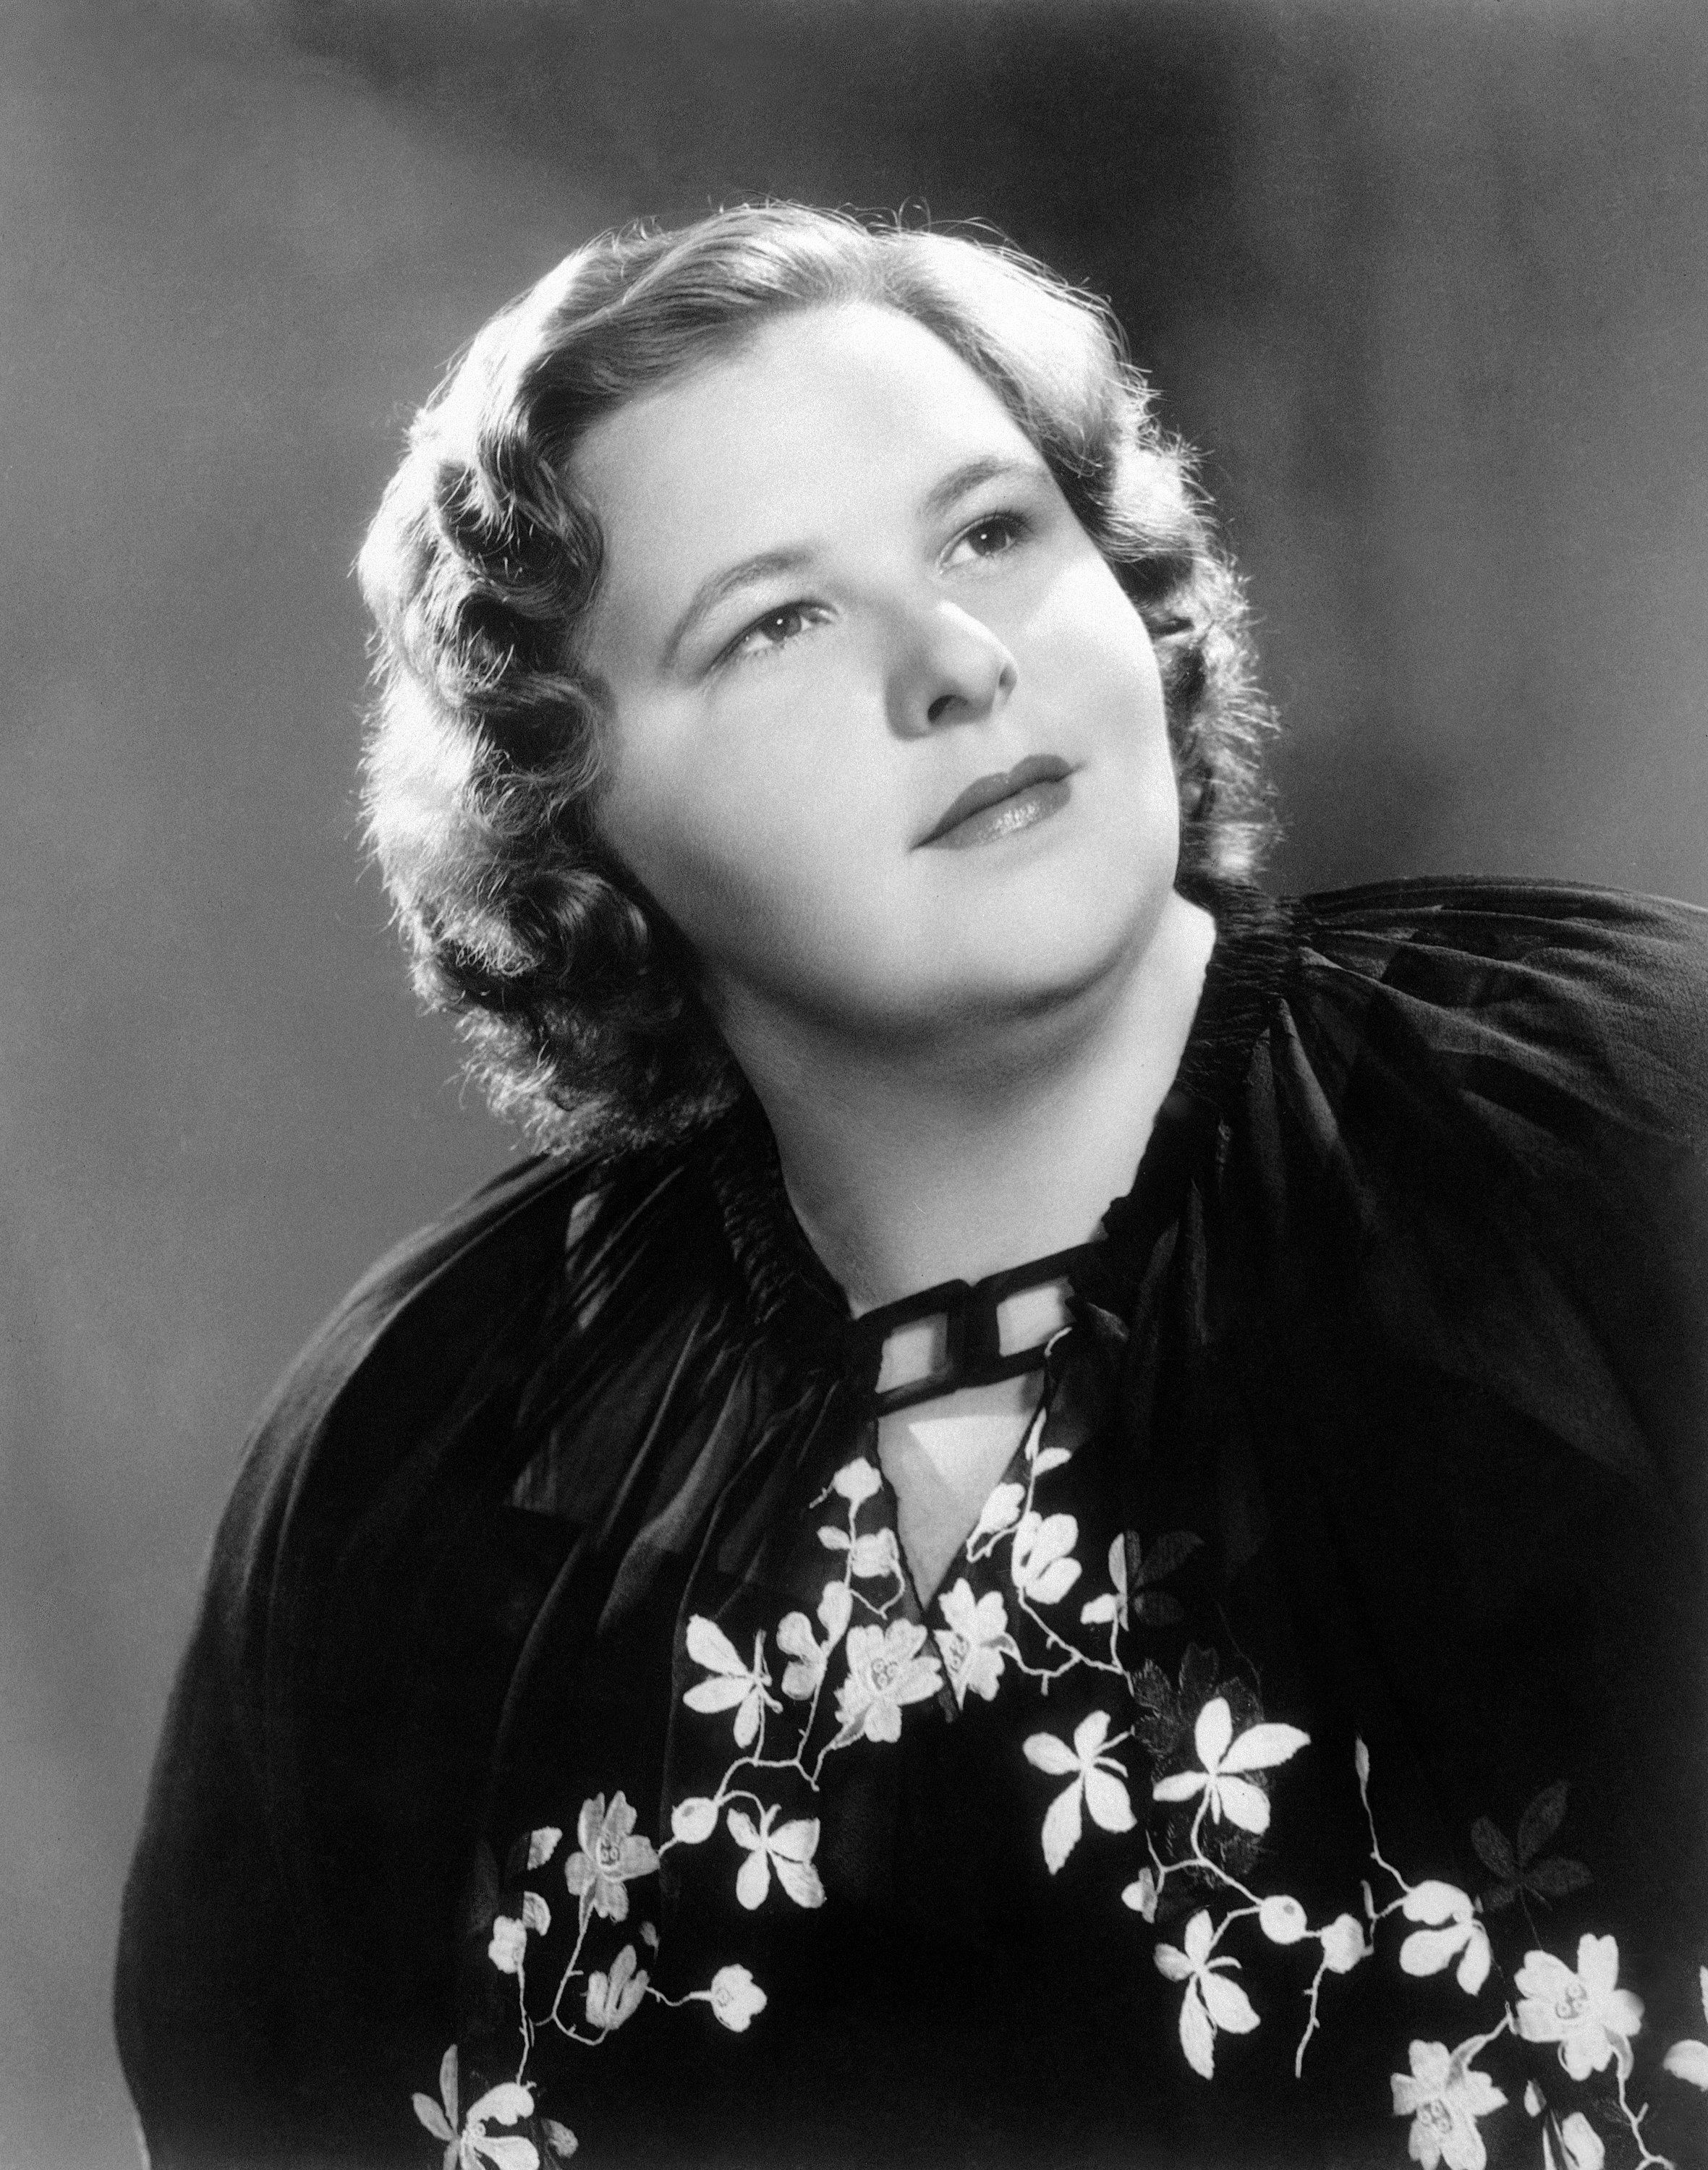 Yankees, Flyers Drop Kate Smith's 'God Bless America' After Hearing Singer's Racist